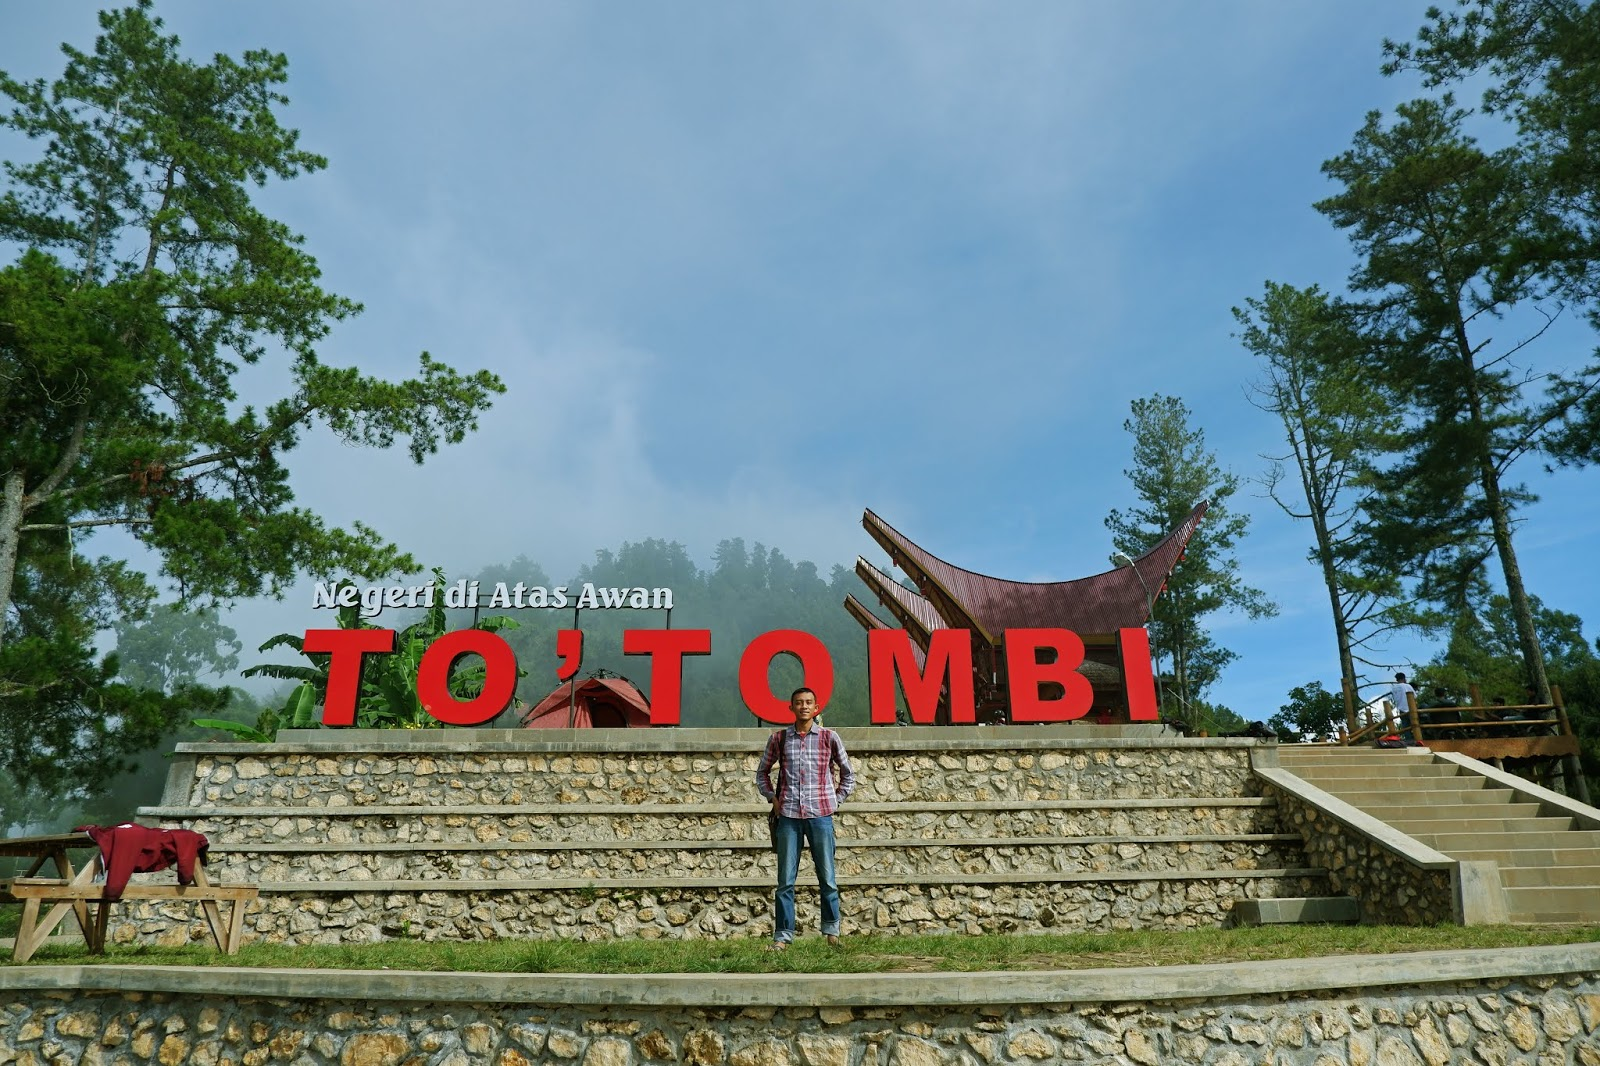 lolai to'tombi toraja